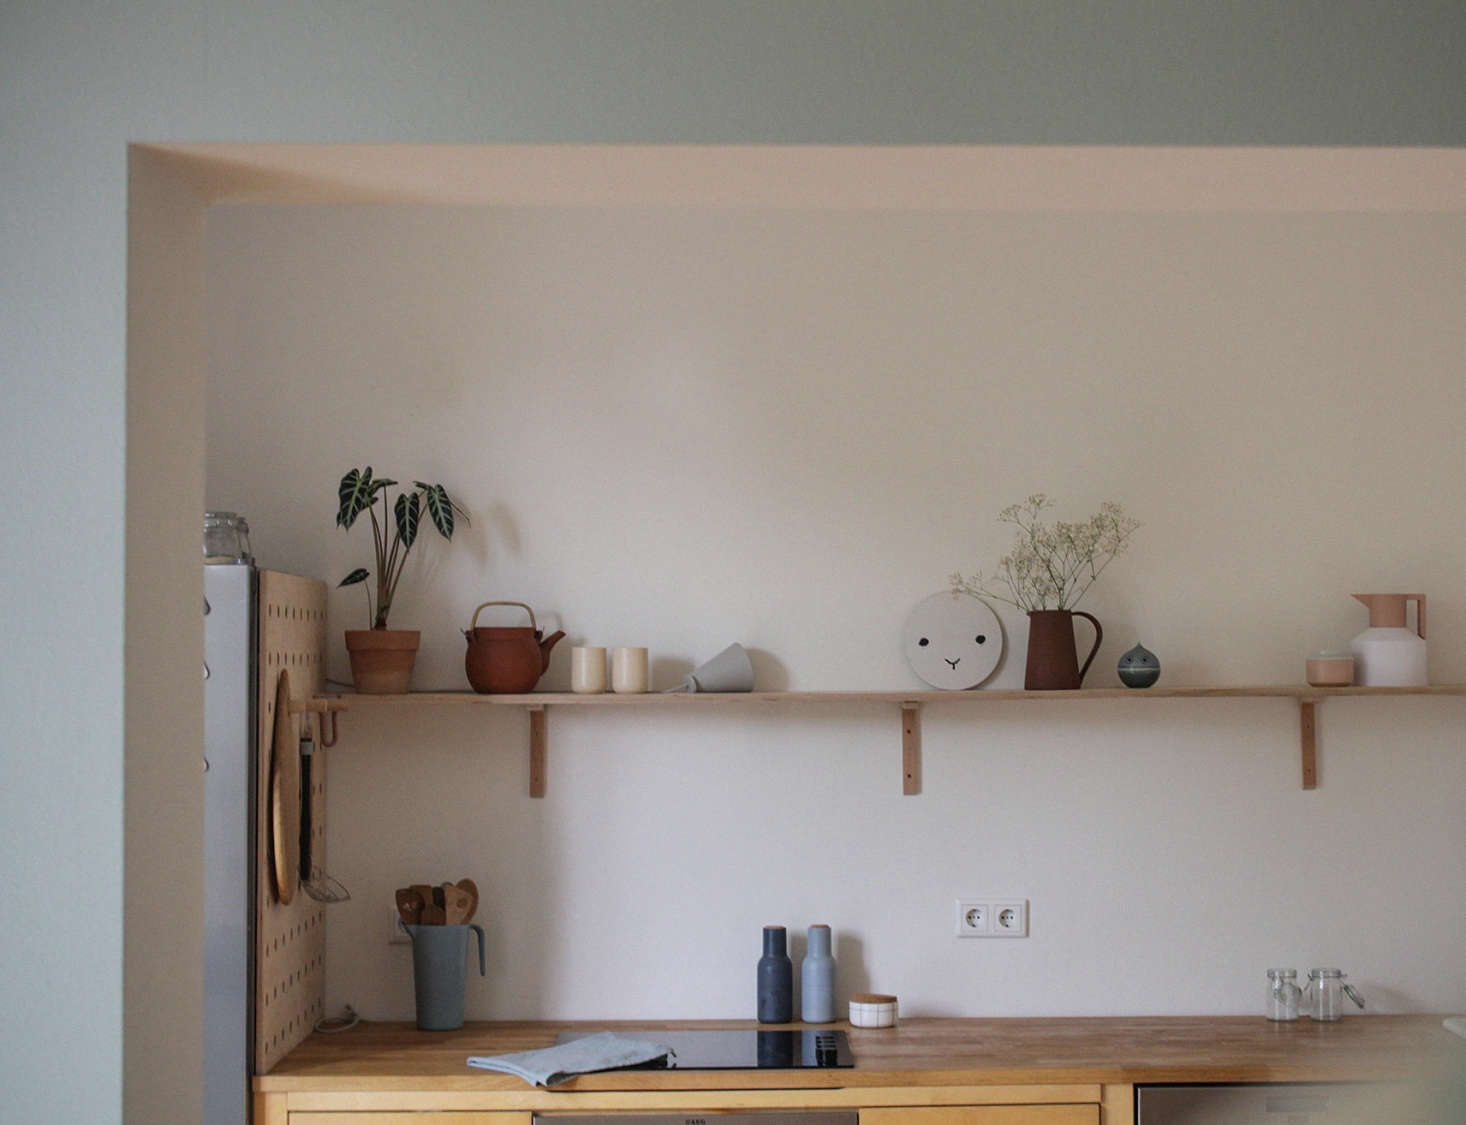 The shelf is stocked with pieces by fellow creatives, including a pair of LAND Mug by Danish ceramic artist Duedahlm, a Terracotta Pitcher from Another Country, and a Normann Copenhagen Geo Vacuum Jug.